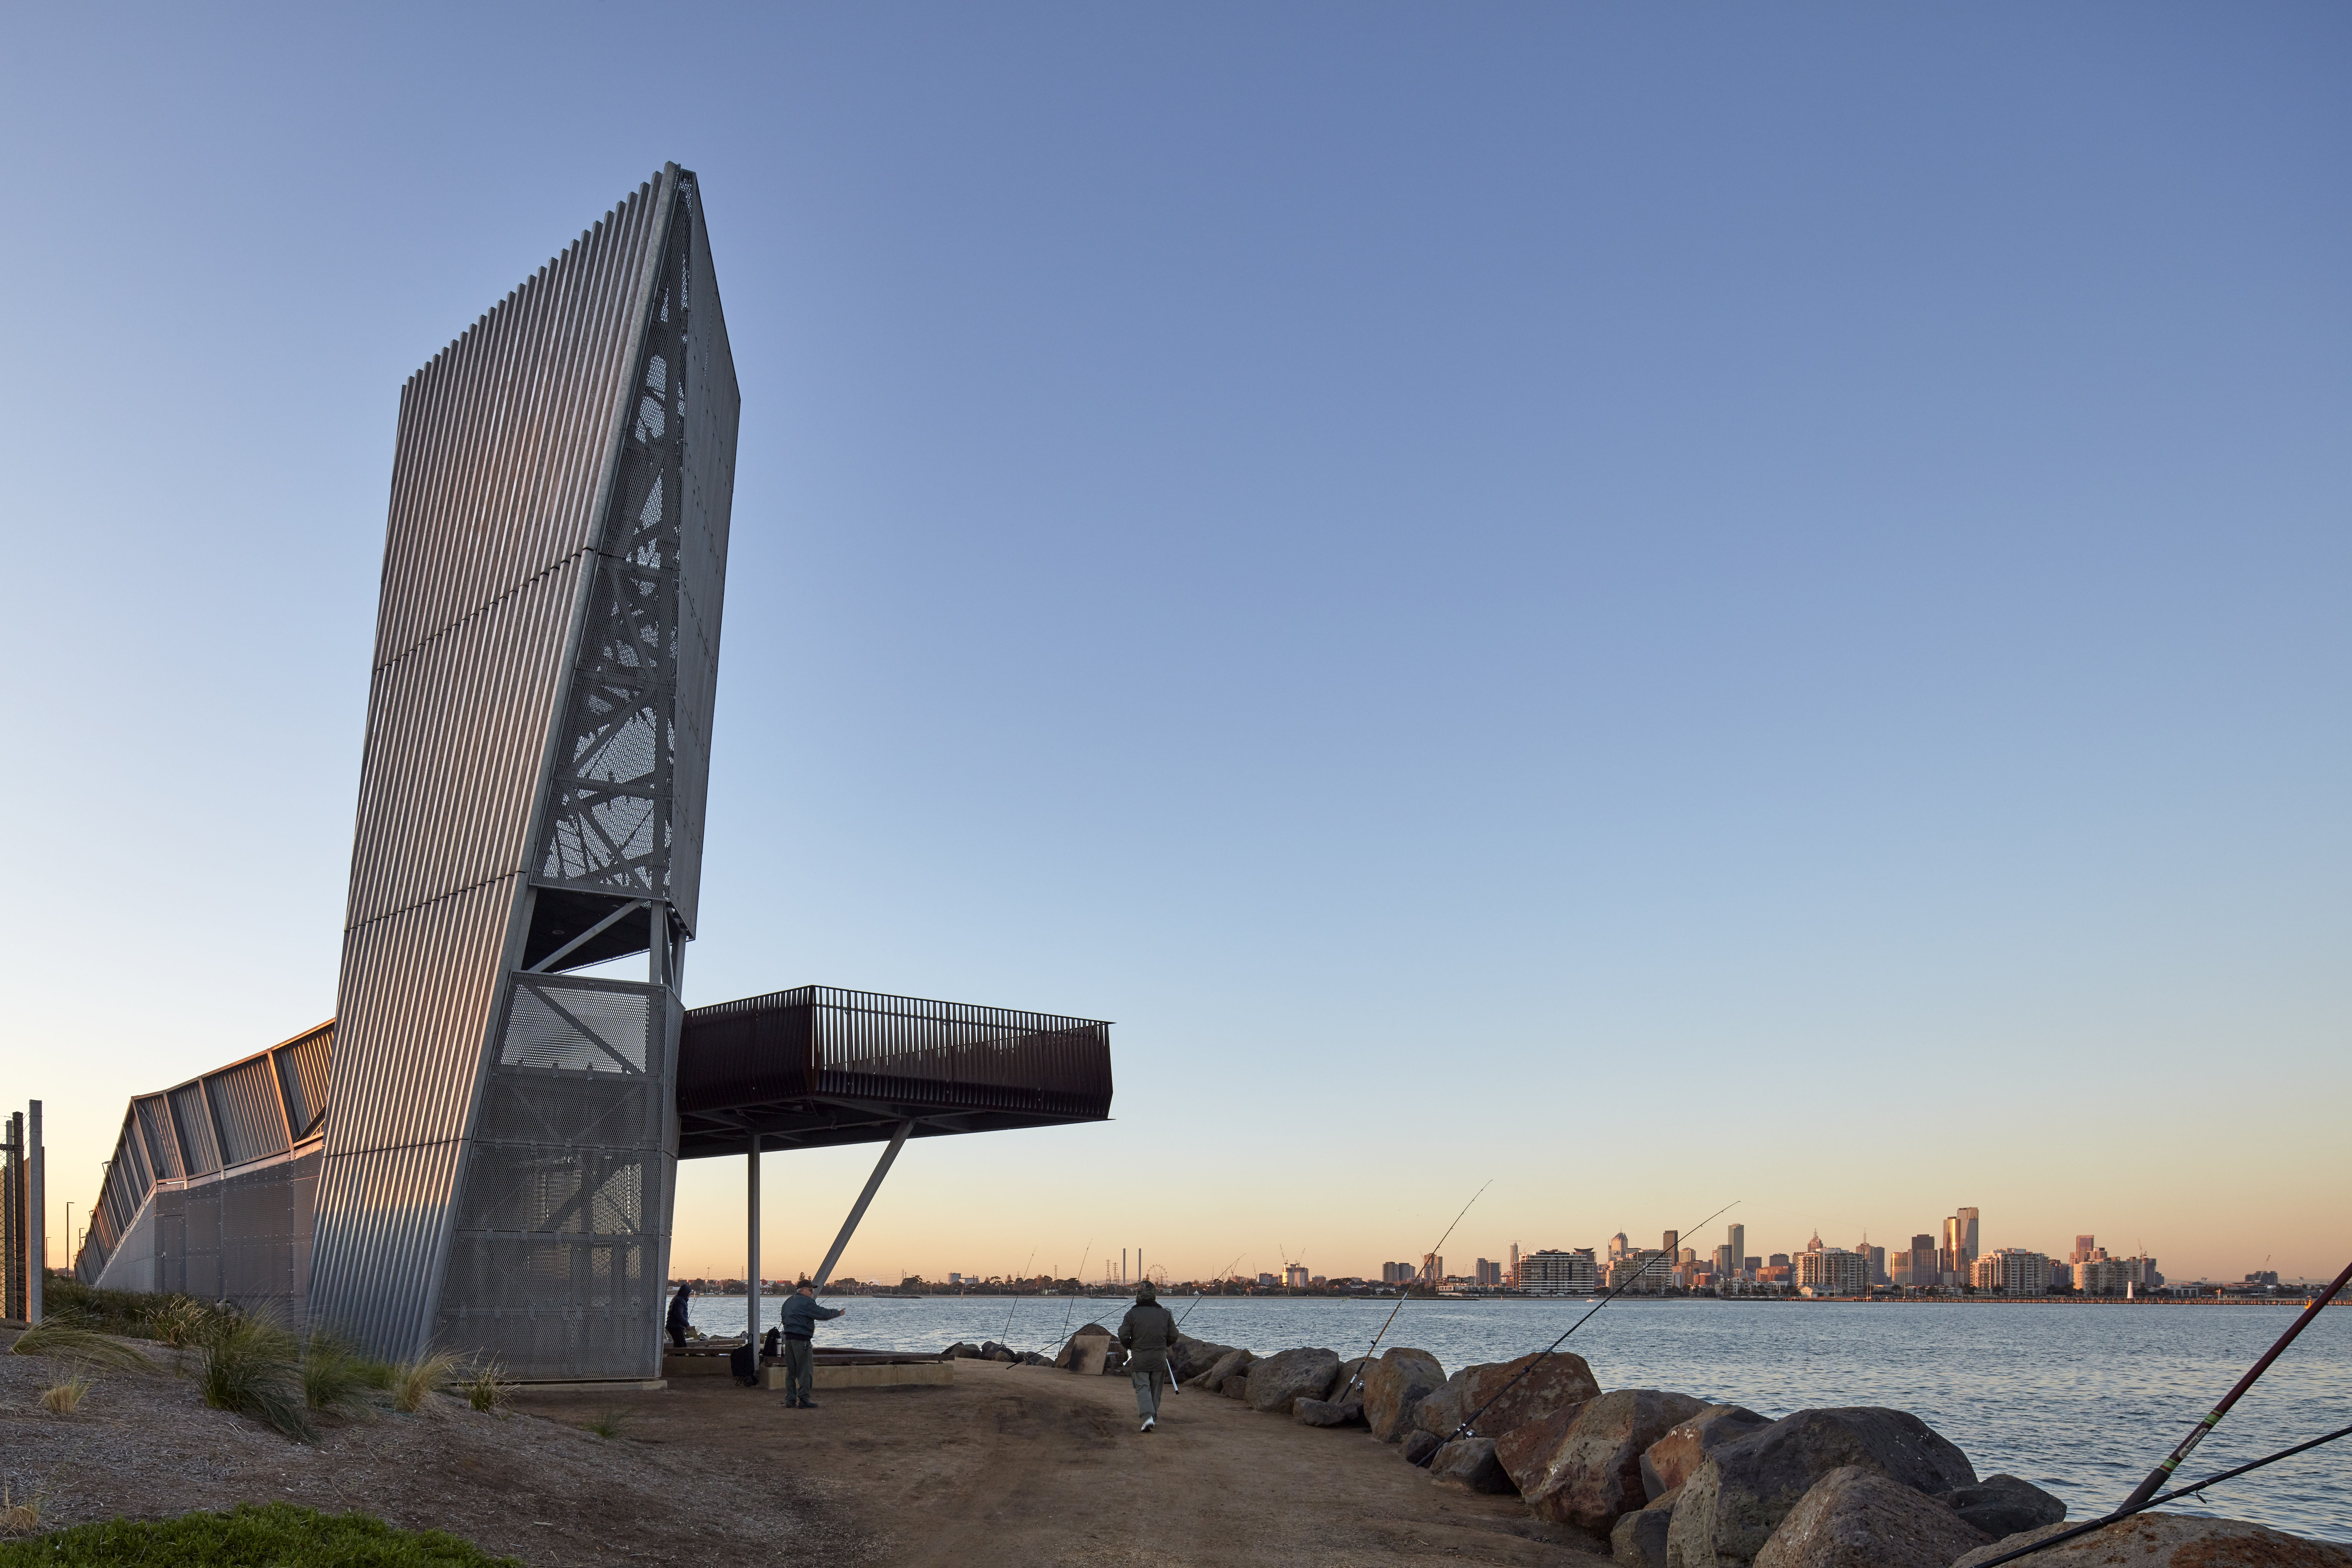 Bridge Street Auto >> Sandridge Lookout - Architizer